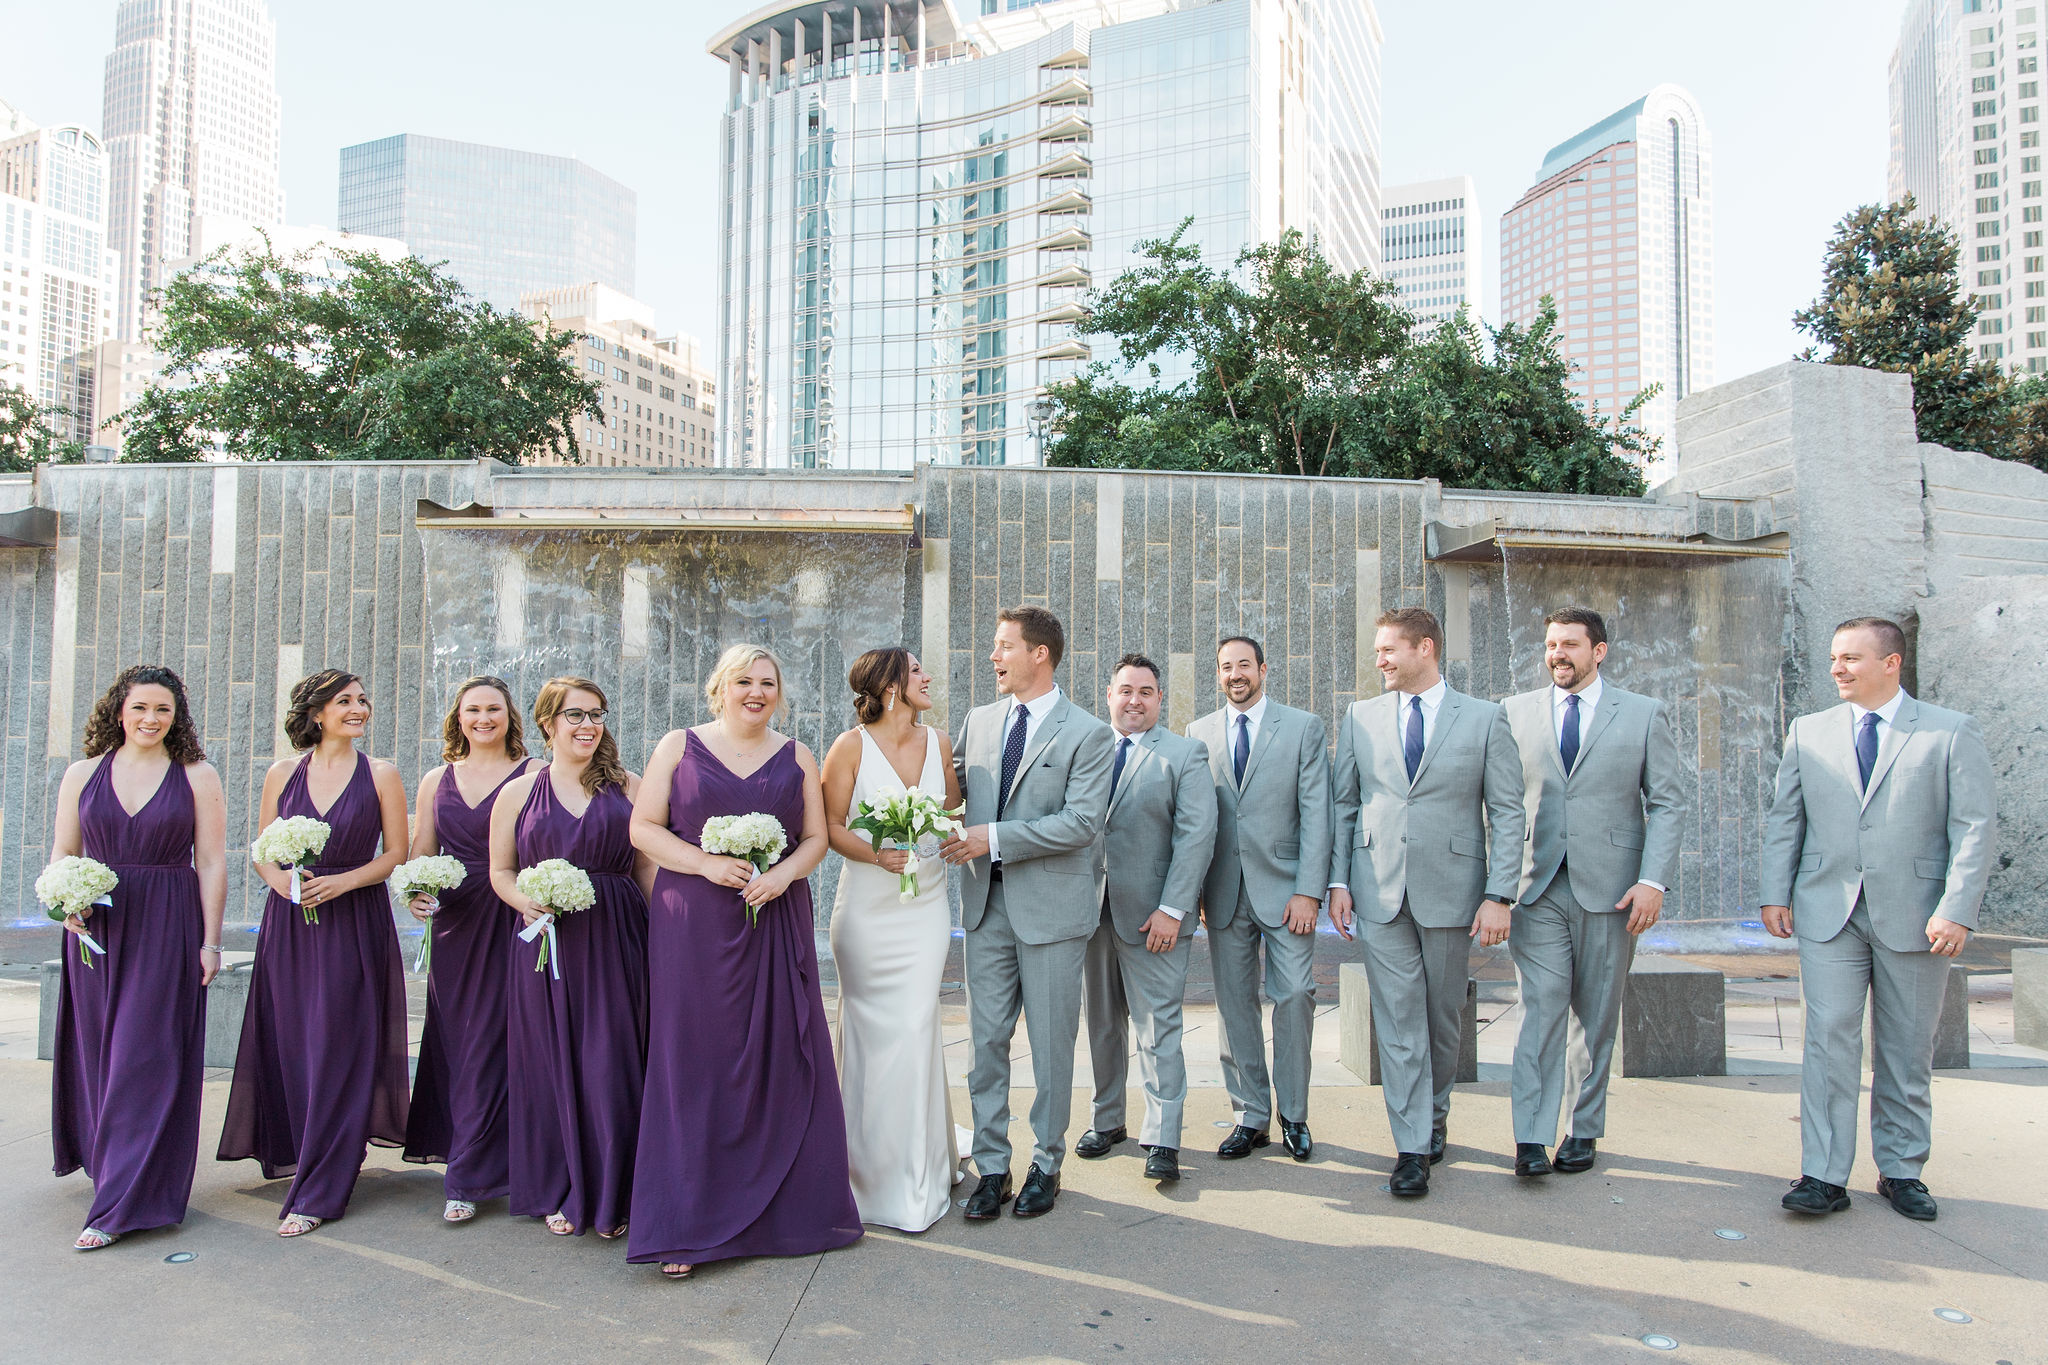 Bride and groom pose with bridal party in Uptown Charlotte, bridesmaids wearing deep purple dresses and groomsmen in cool gray suites all captured by Sunshower Photography